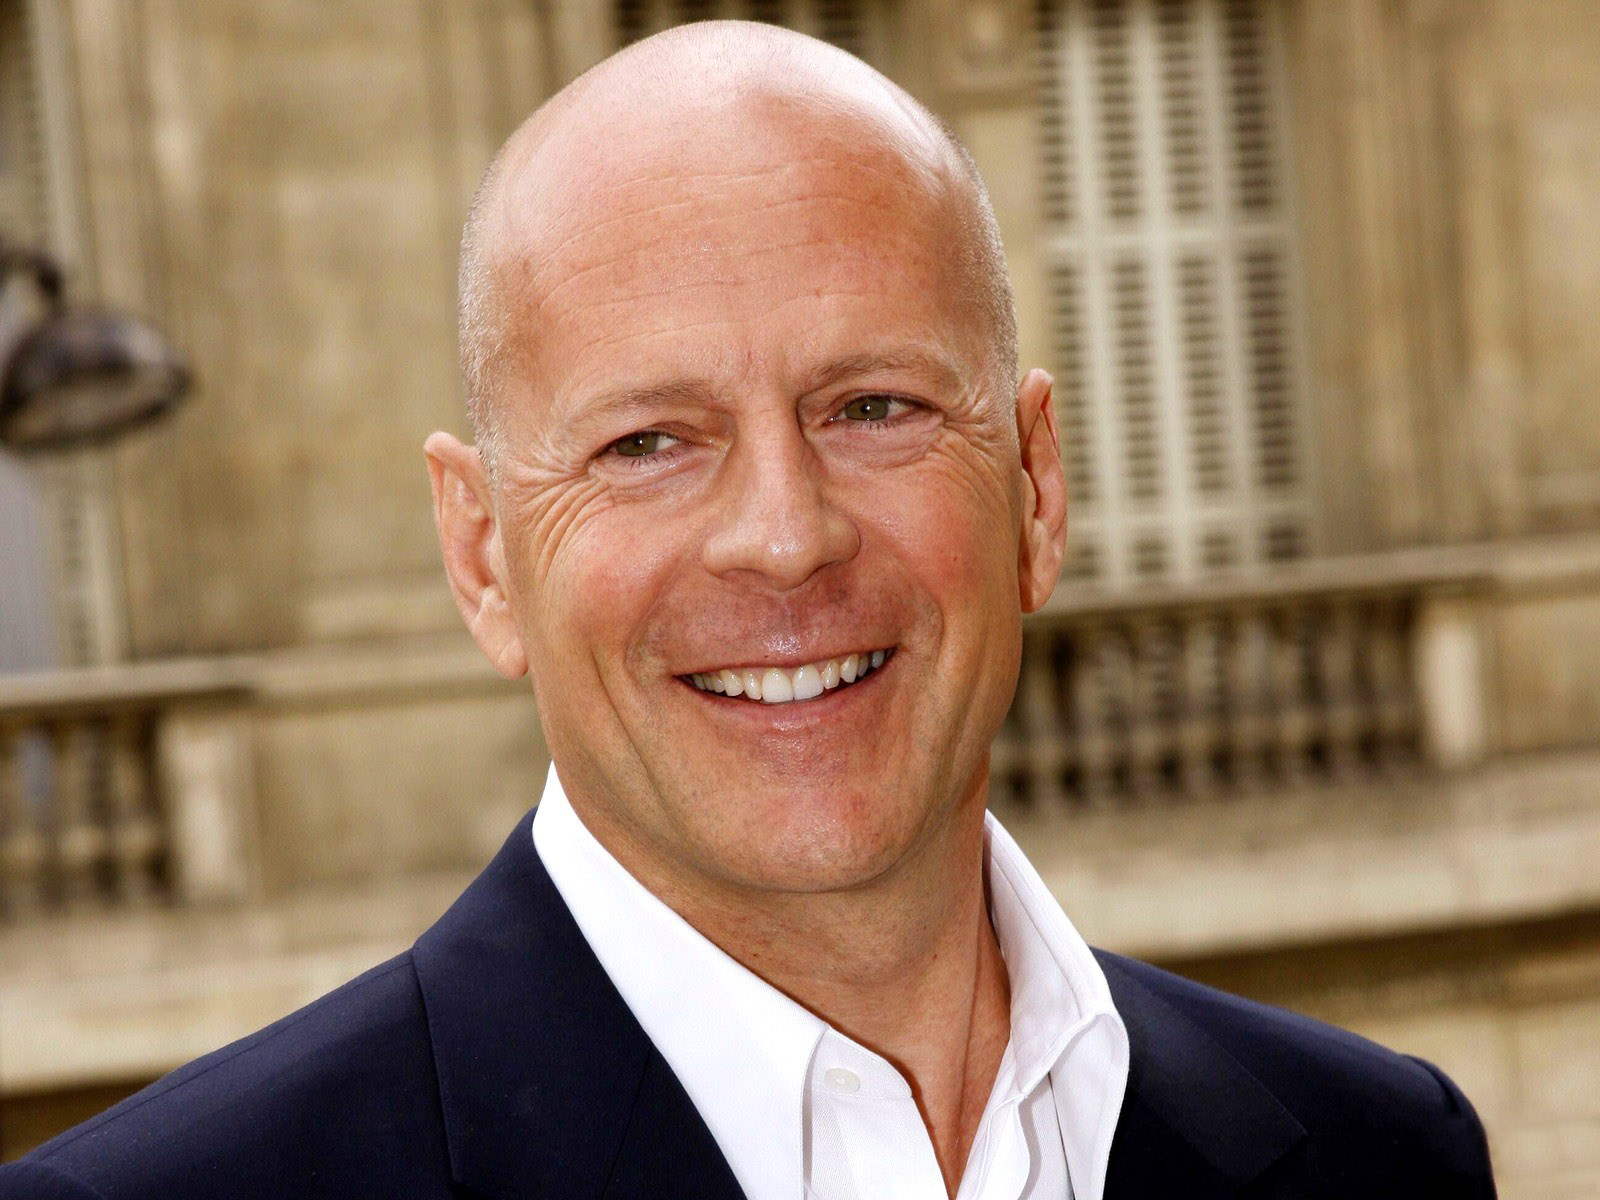 bruce willis trumpbruce willis filmography, bruce willis film, bruce willis wikipedia, bruce willis movies, bruce willis filmleri, bruce willis 2017, bruce willis биография, bruce willis daughters, bruce willis photo, bruce willis young, bruce willis рост, bruce willis gif, bruce willis фильмография, bruce willis parfum, bruce willis height, bruce willis wiki, bruce willis trump, bruce willis filme, bruce willis wife, bruce willis возраст